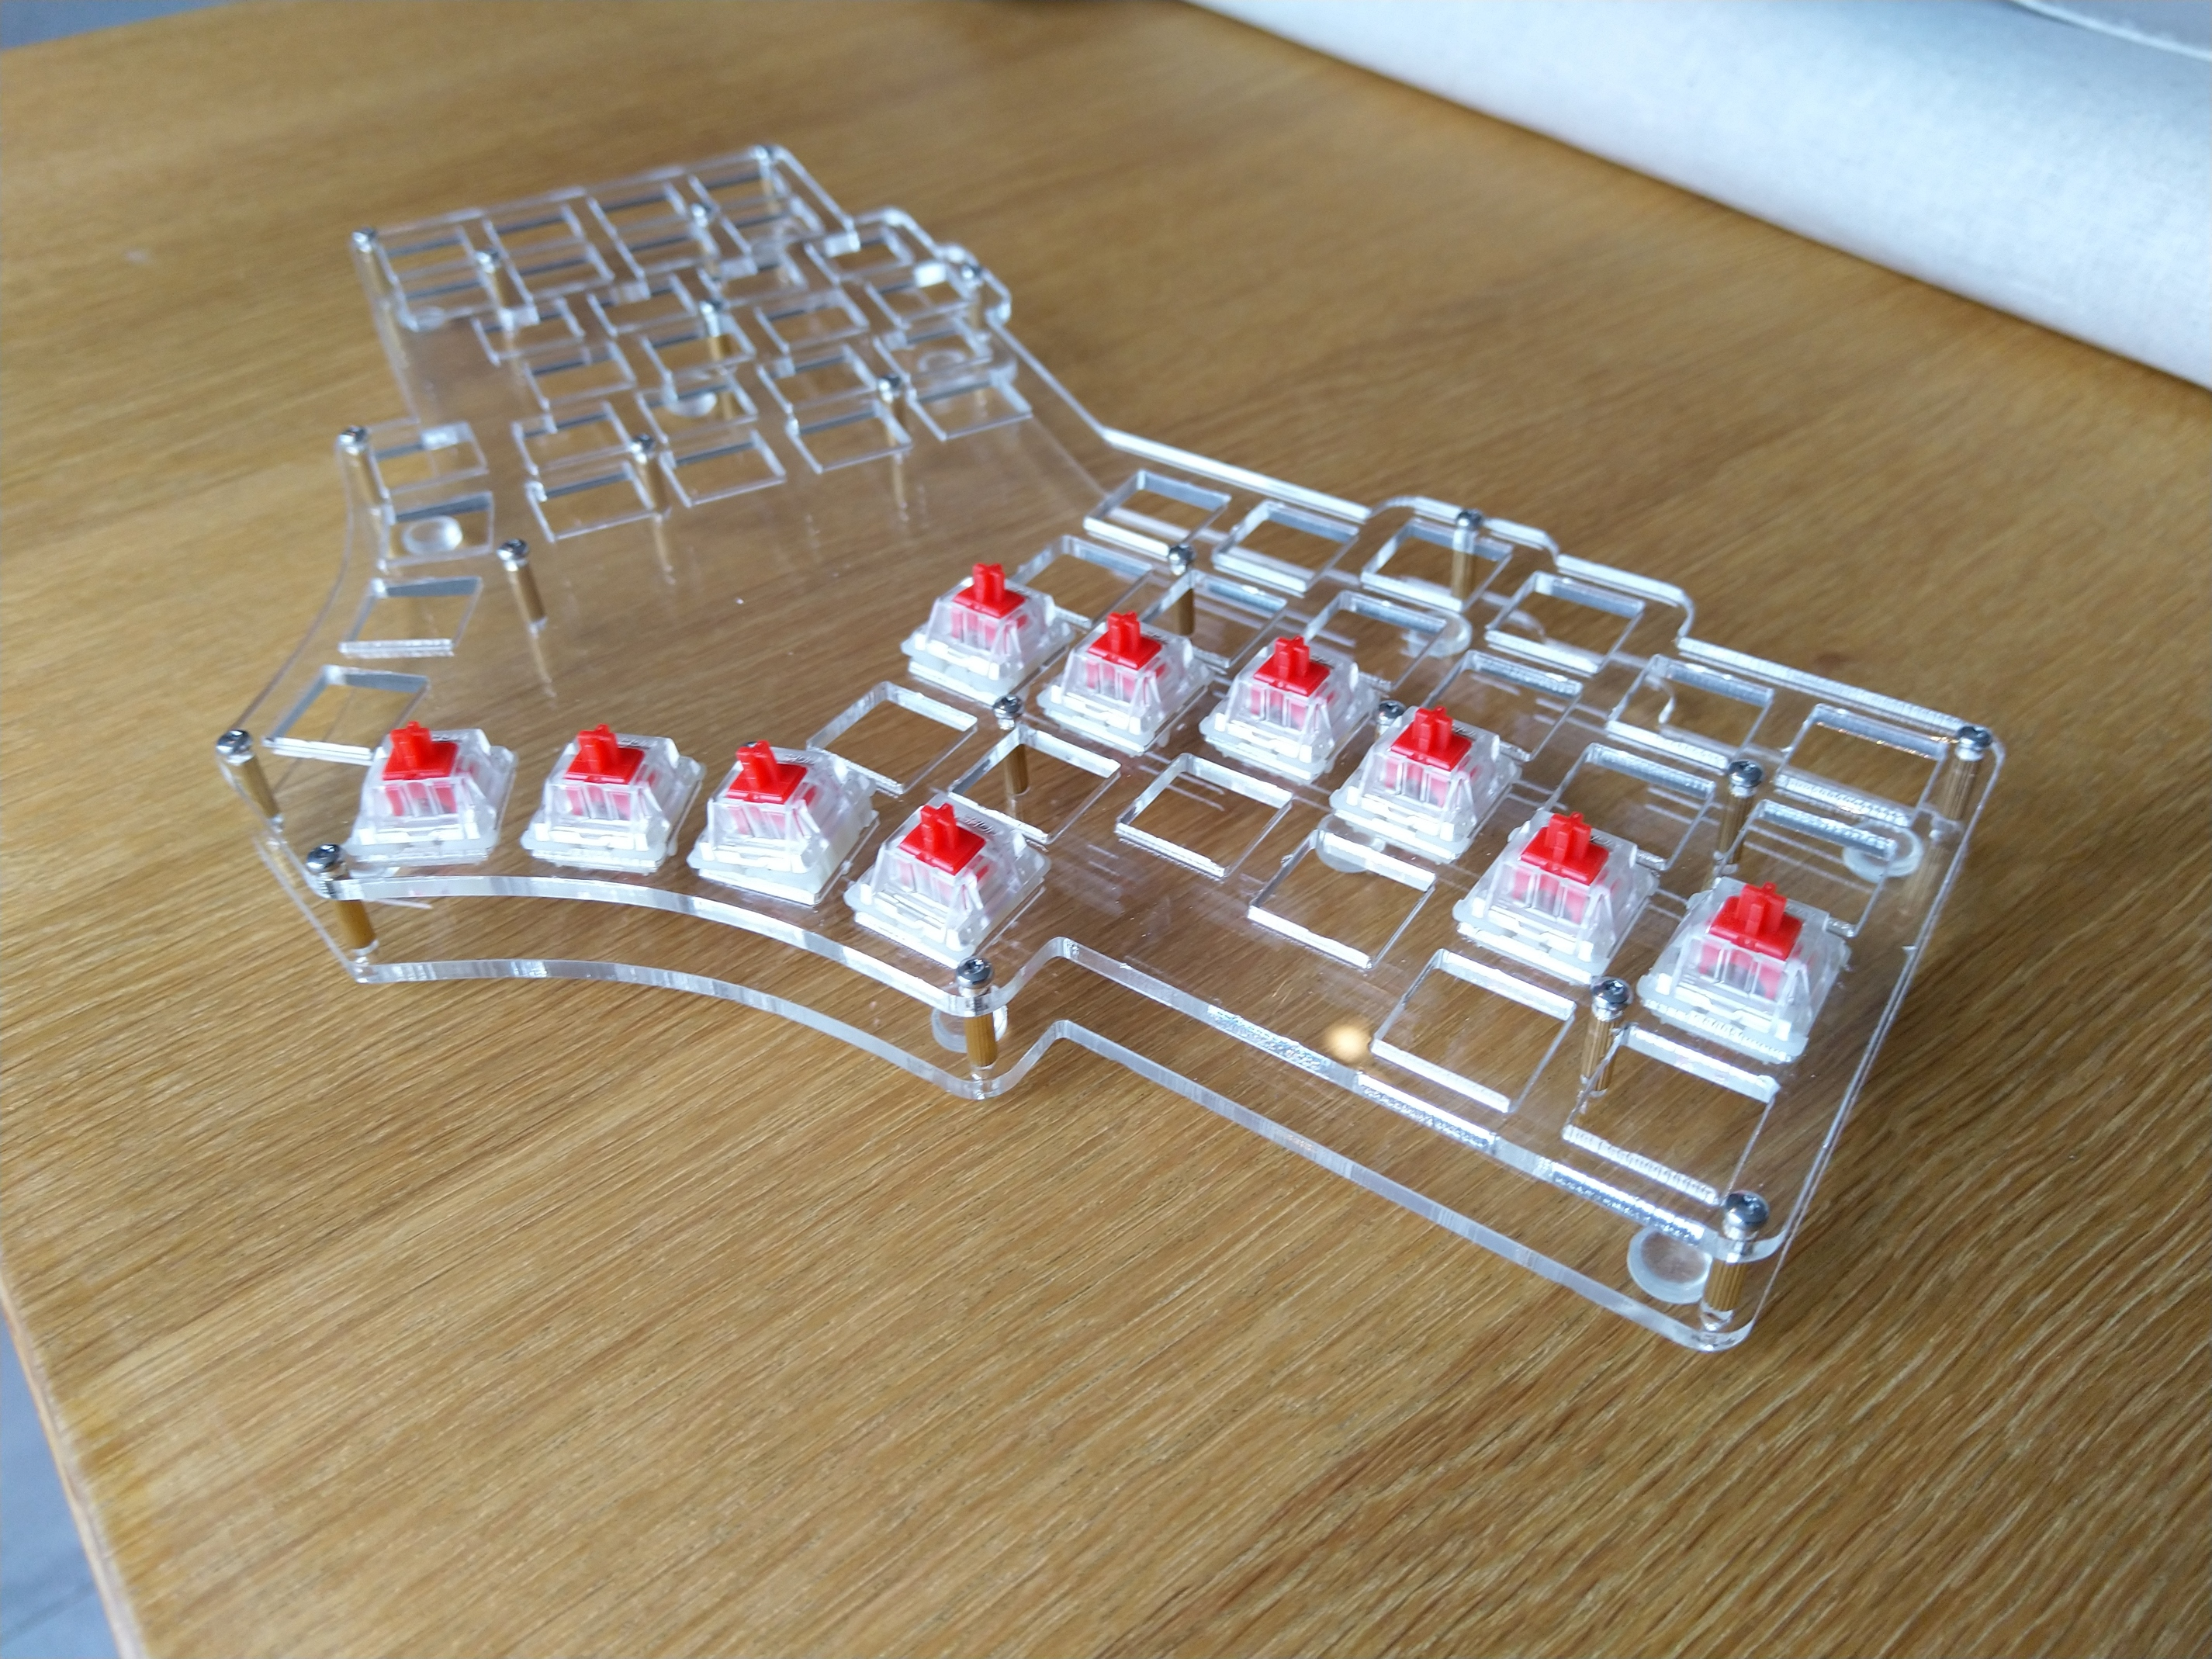 Are there any creative Ortholinear keyboards out there